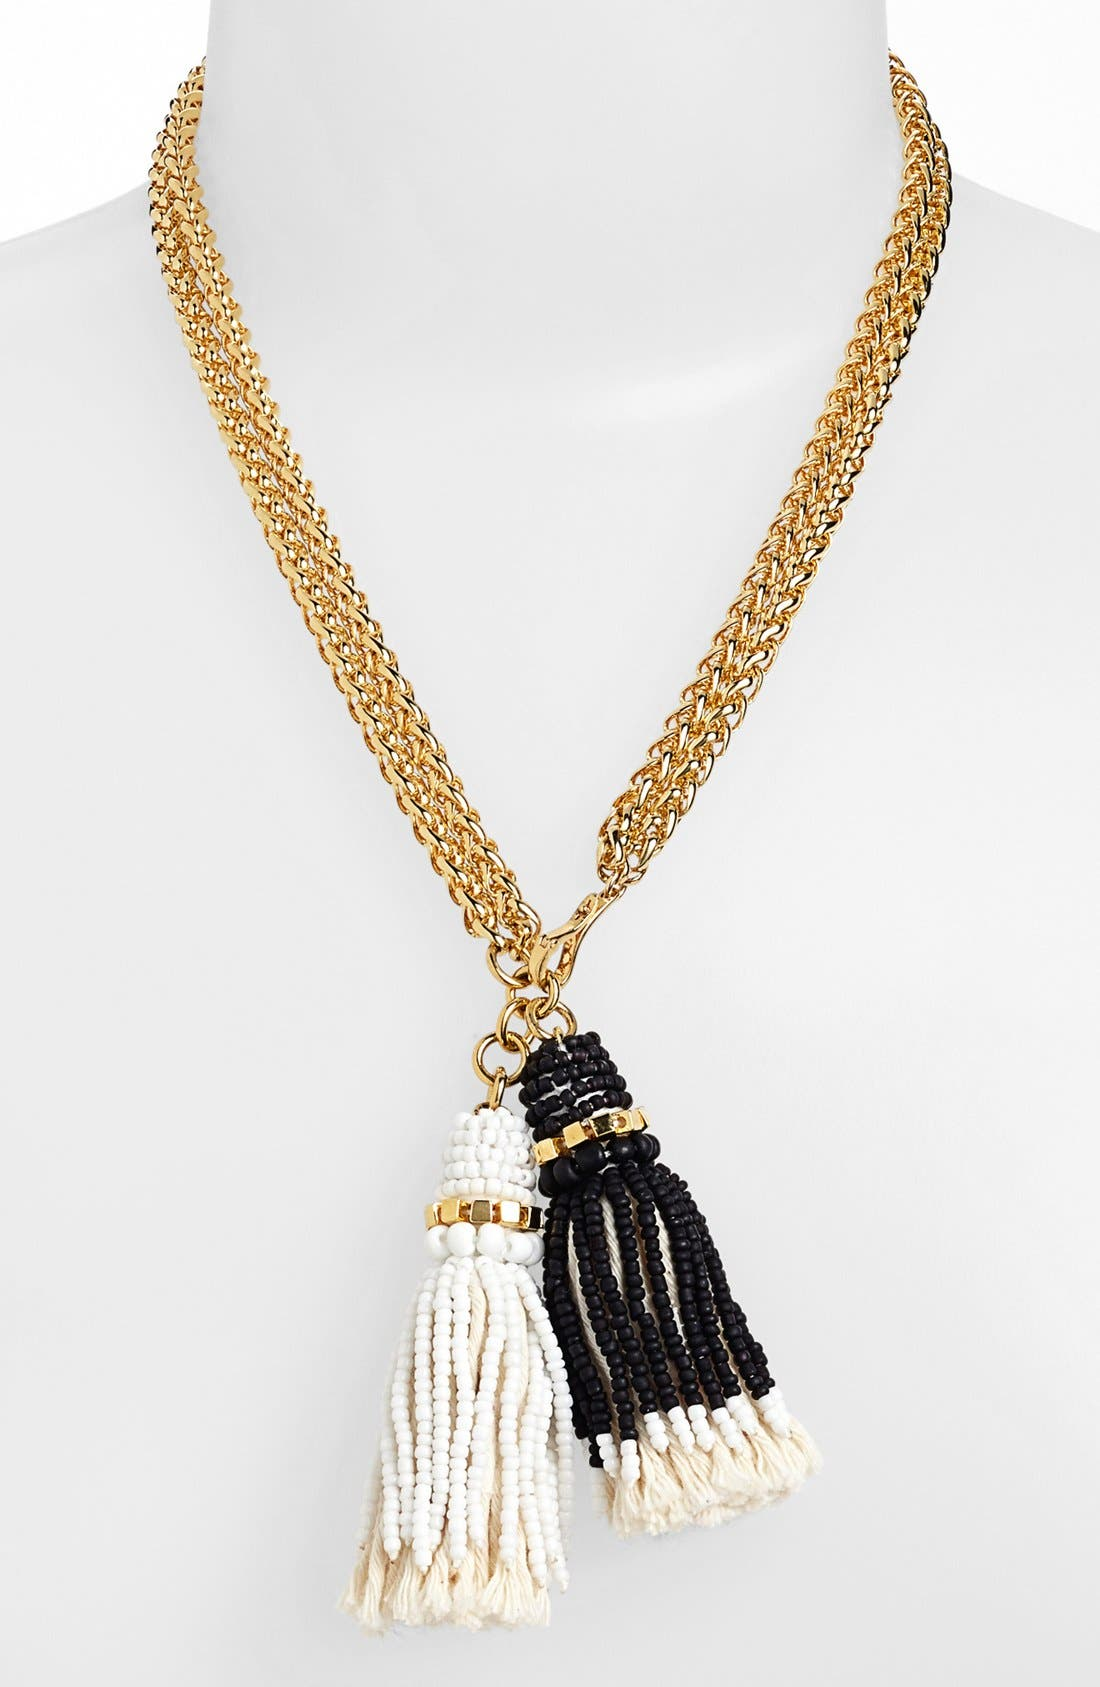 Alternate Image 1 Selected - Vince Camuto 'Rope Royalty' Convertible Tassel Necklace